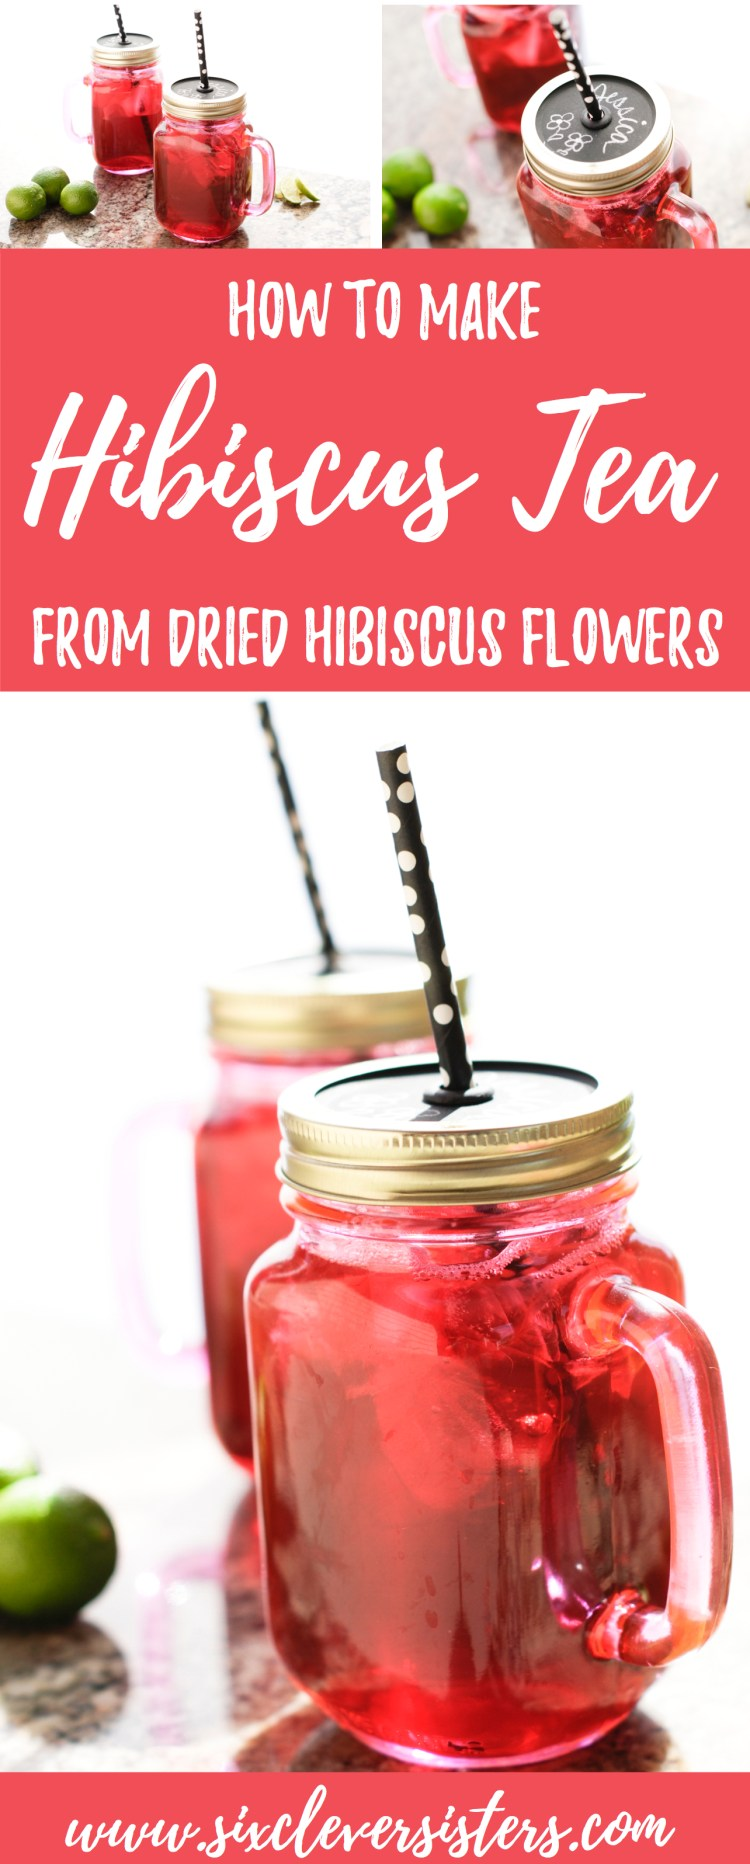 How to Make Hibiscus Tea | Brewing Tea | Low Calorie Drinks | Healthy Drink Recipes | Summer Drinks | Iced Tea Recipes | Caffeine Free Drinks | Hibiscus Tea Recipe | Drink Recipes | Summer Drinks | Have you ever seen dried hibiscus flowers and thought what do you do with those?! Six Clever Sisters has the perfect #recipe for you for an amazing refreshing tea! Yum . . . this hibiscus tea is so easy to make and sooooo good!!